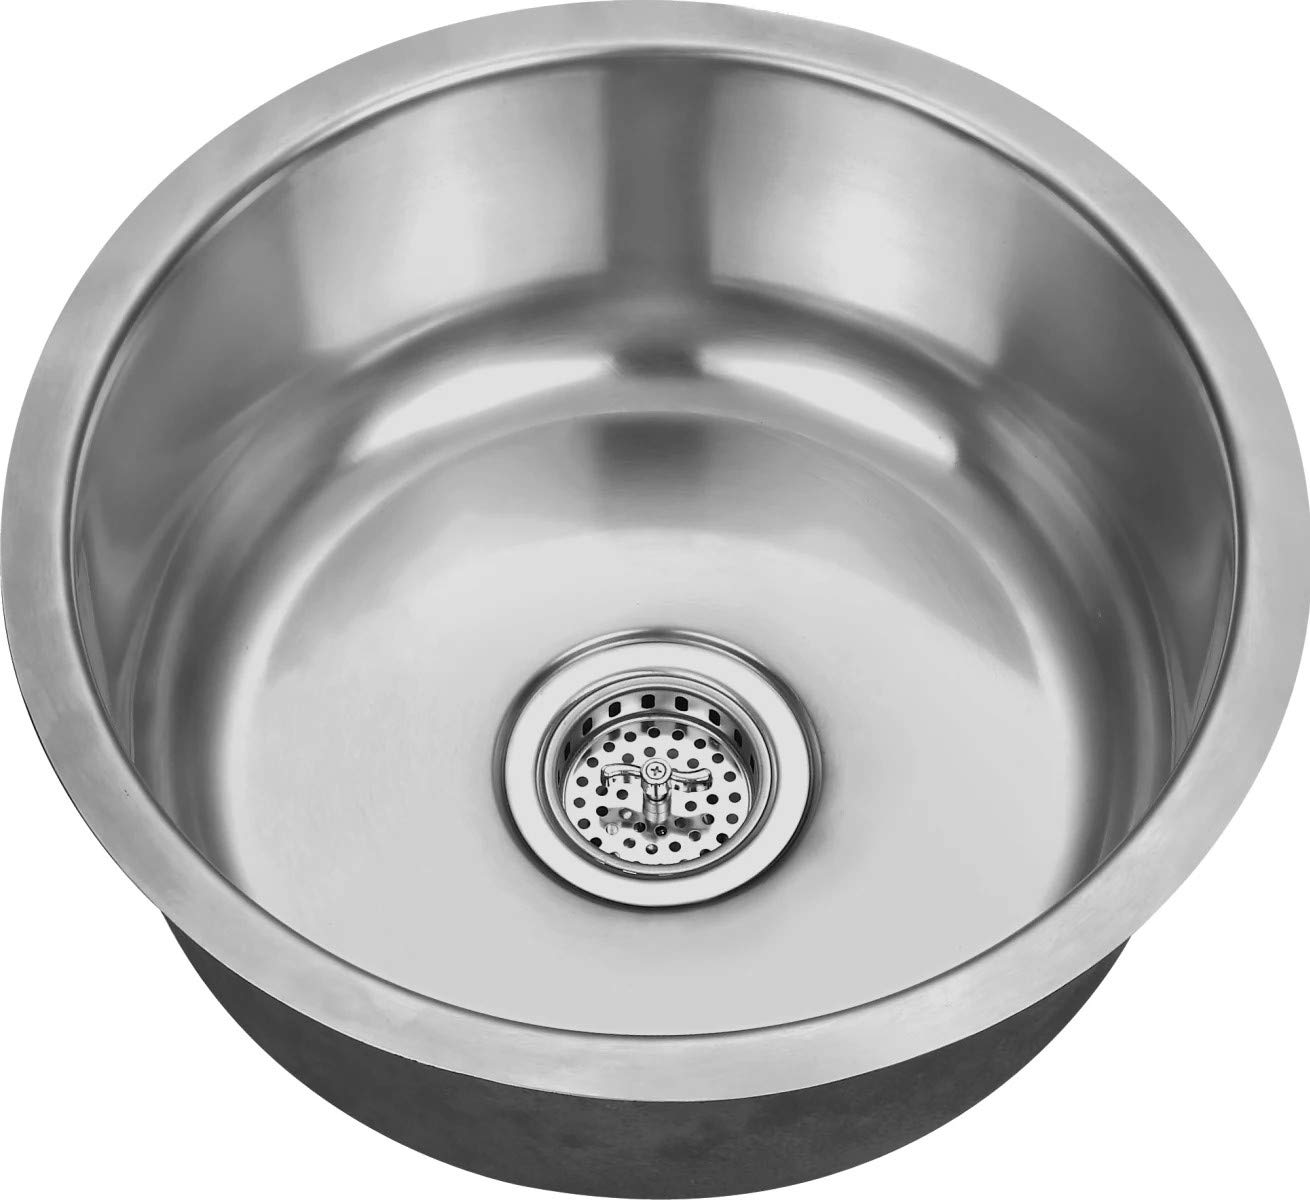 Miseno MSS17C 17-1/8'' Circular Undermount Stainless Steel Bar/Prep Sink - Drain Assembly Included